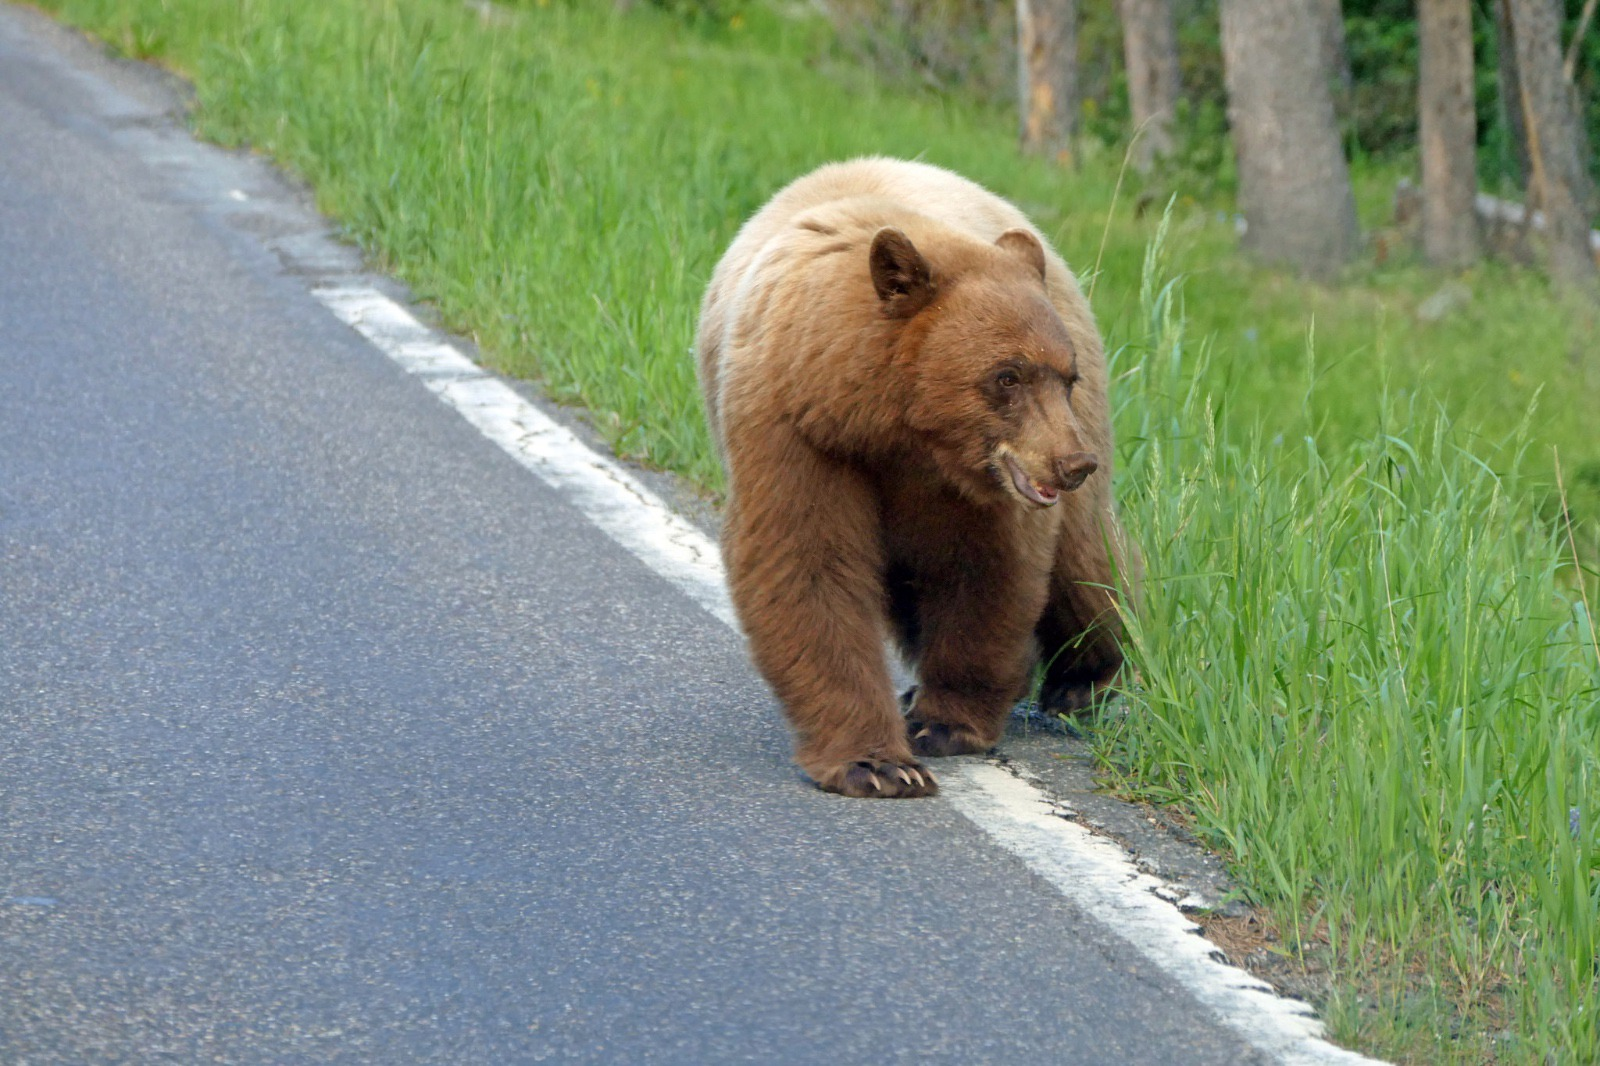 Black bear crossing the road near Obsidian Creek; NPS / Diane Renkin